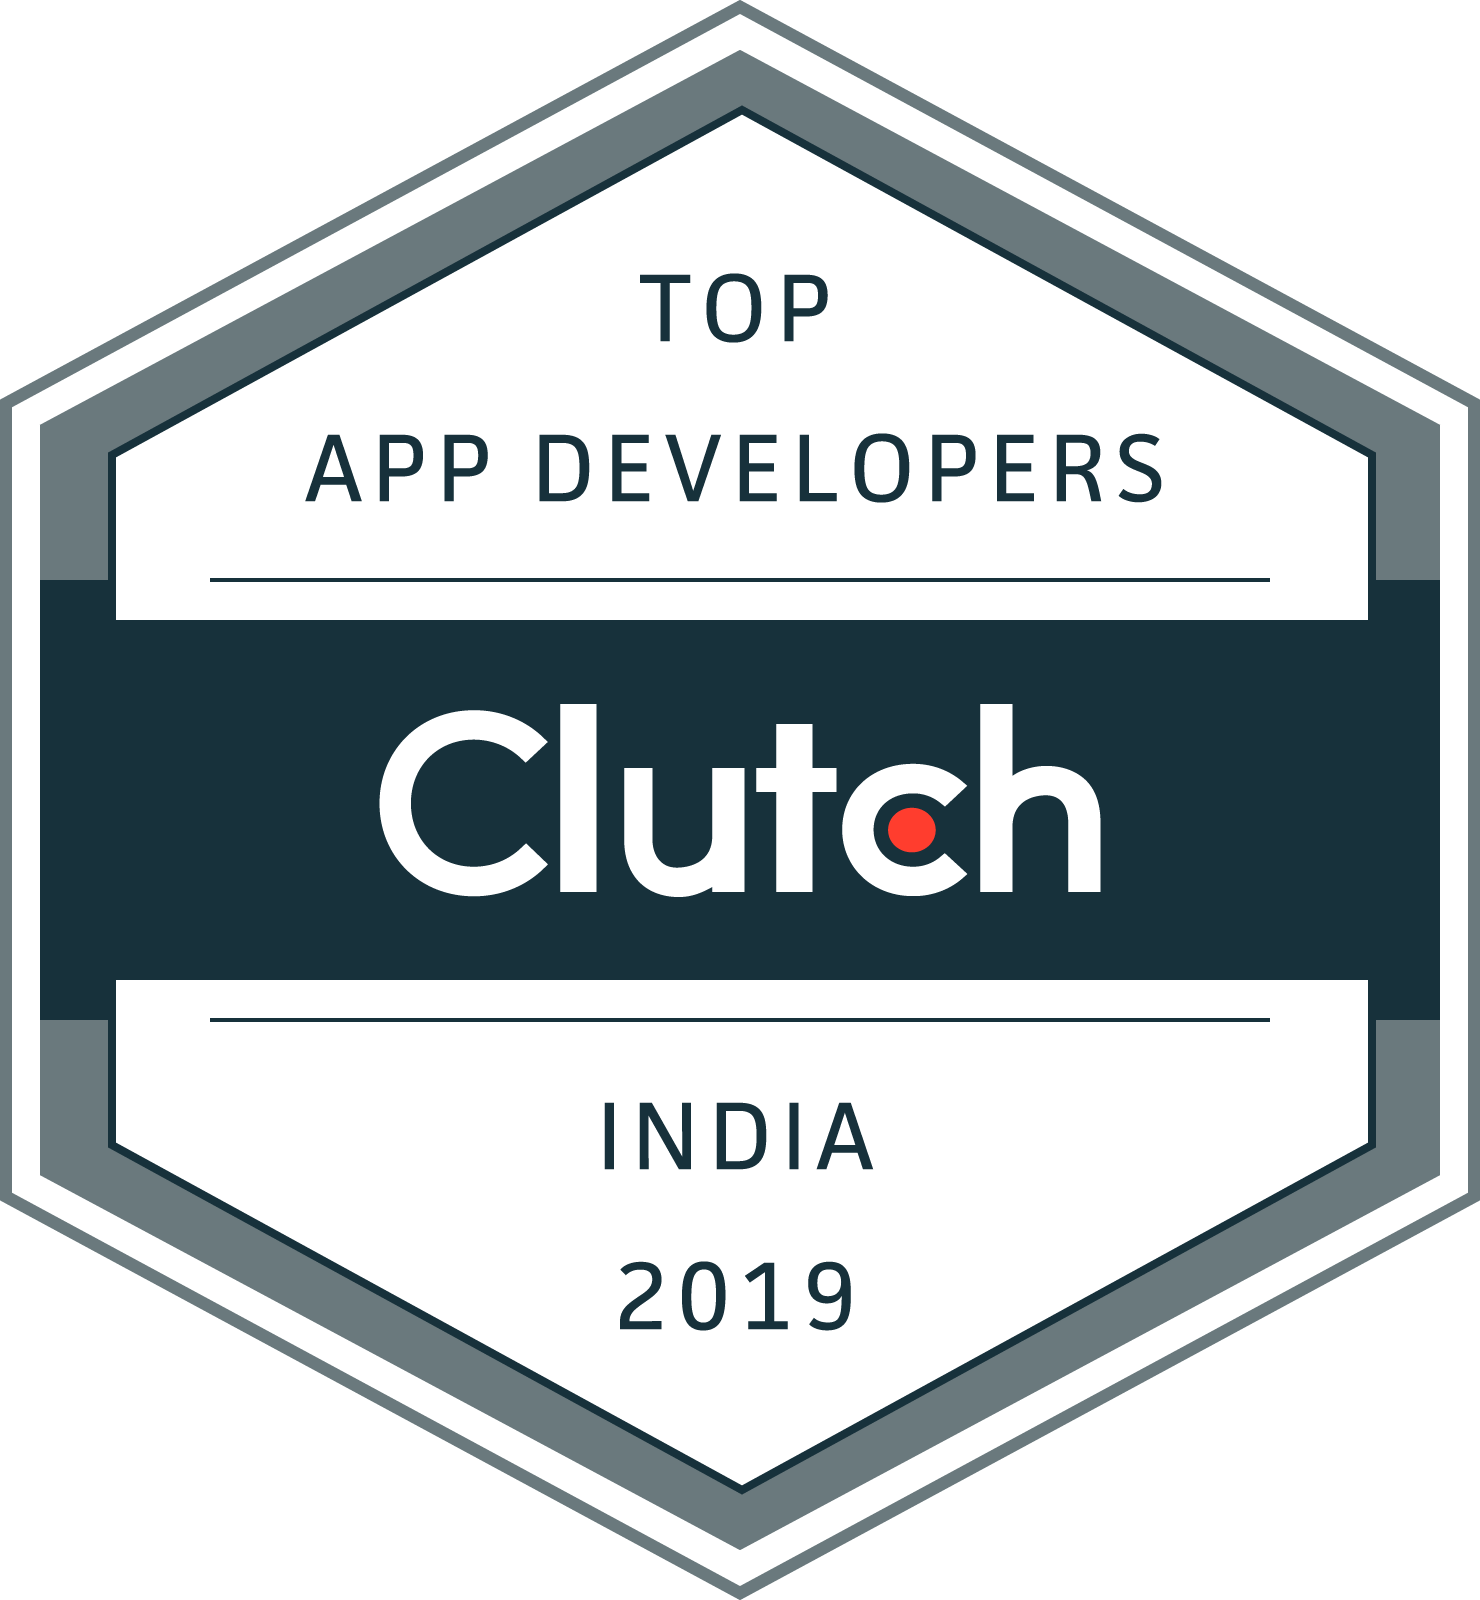 Top 20+ App Developers in India - 2019 Reviews | Clutch co